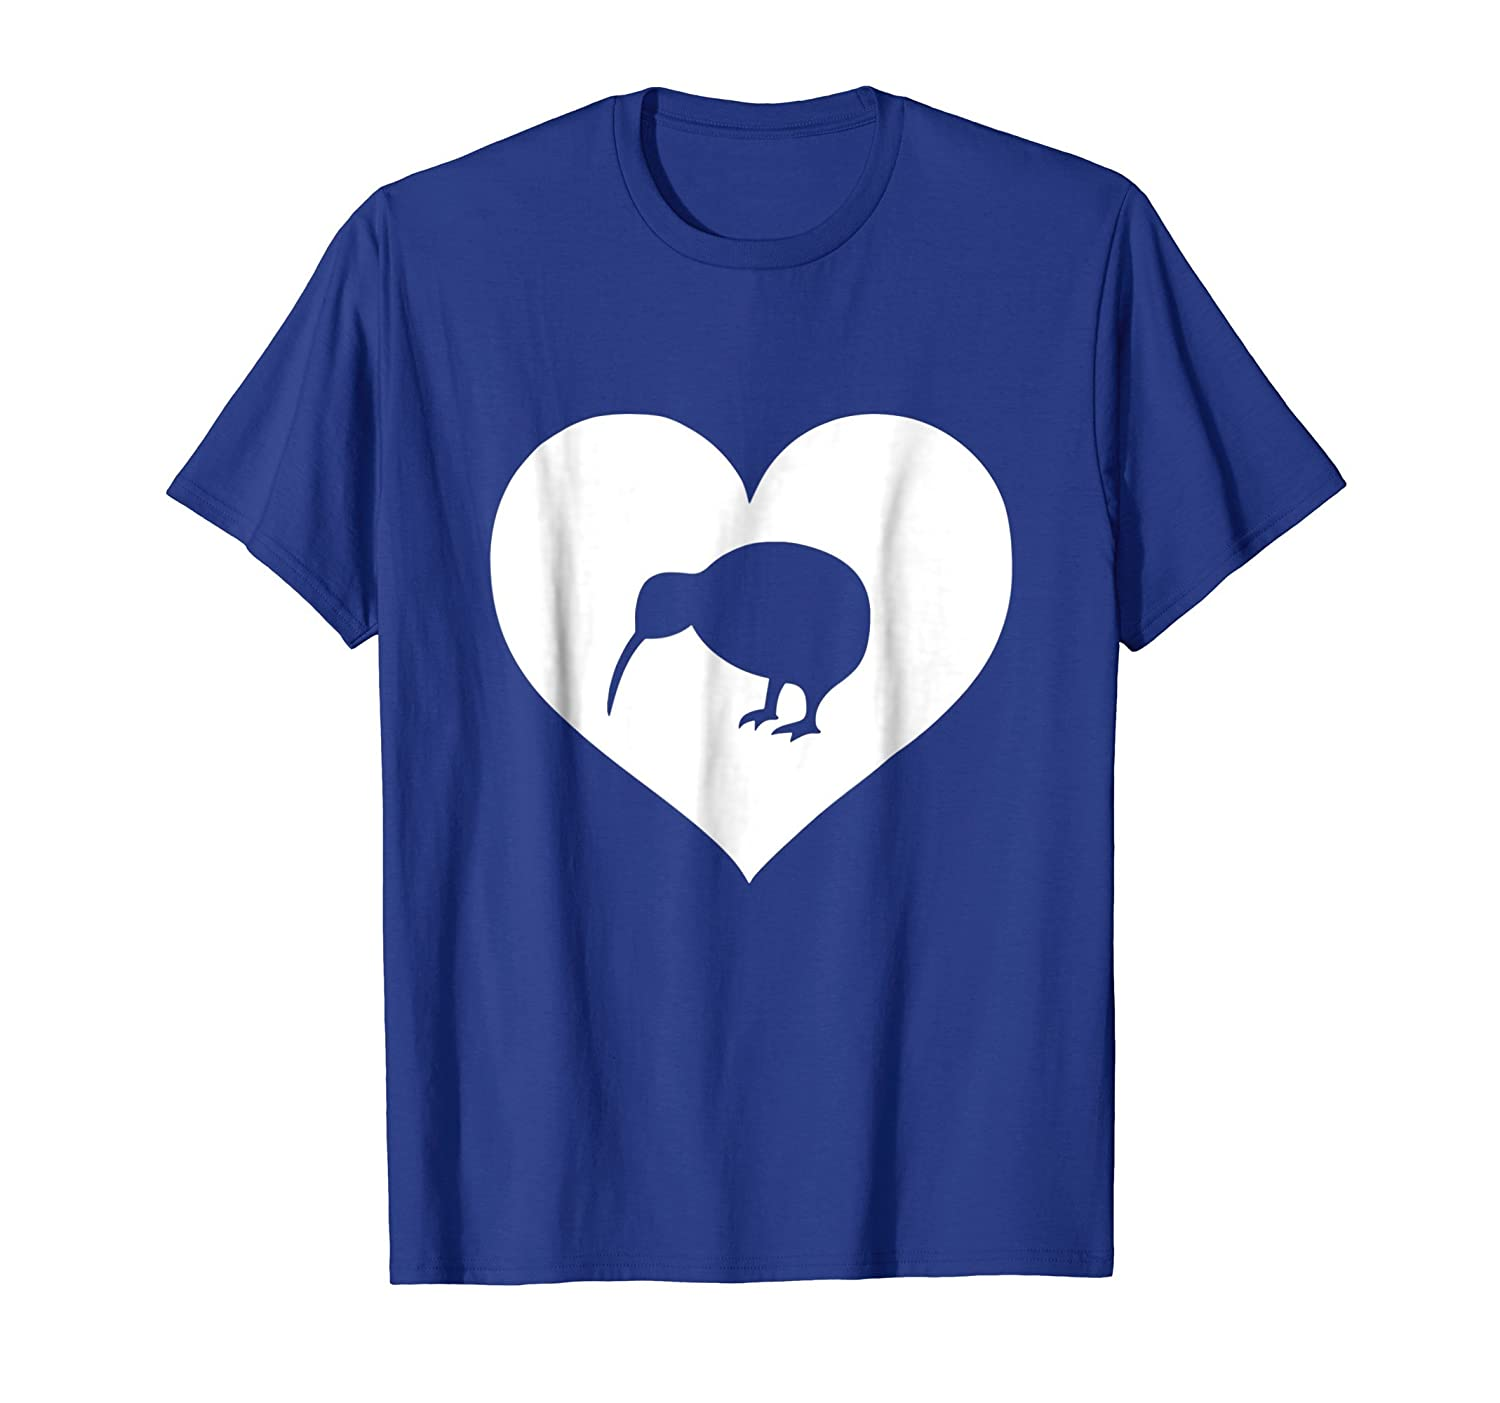 New Zealand Kiwi Bird T-Shirt gift for Women Men Teens Kids-AZP